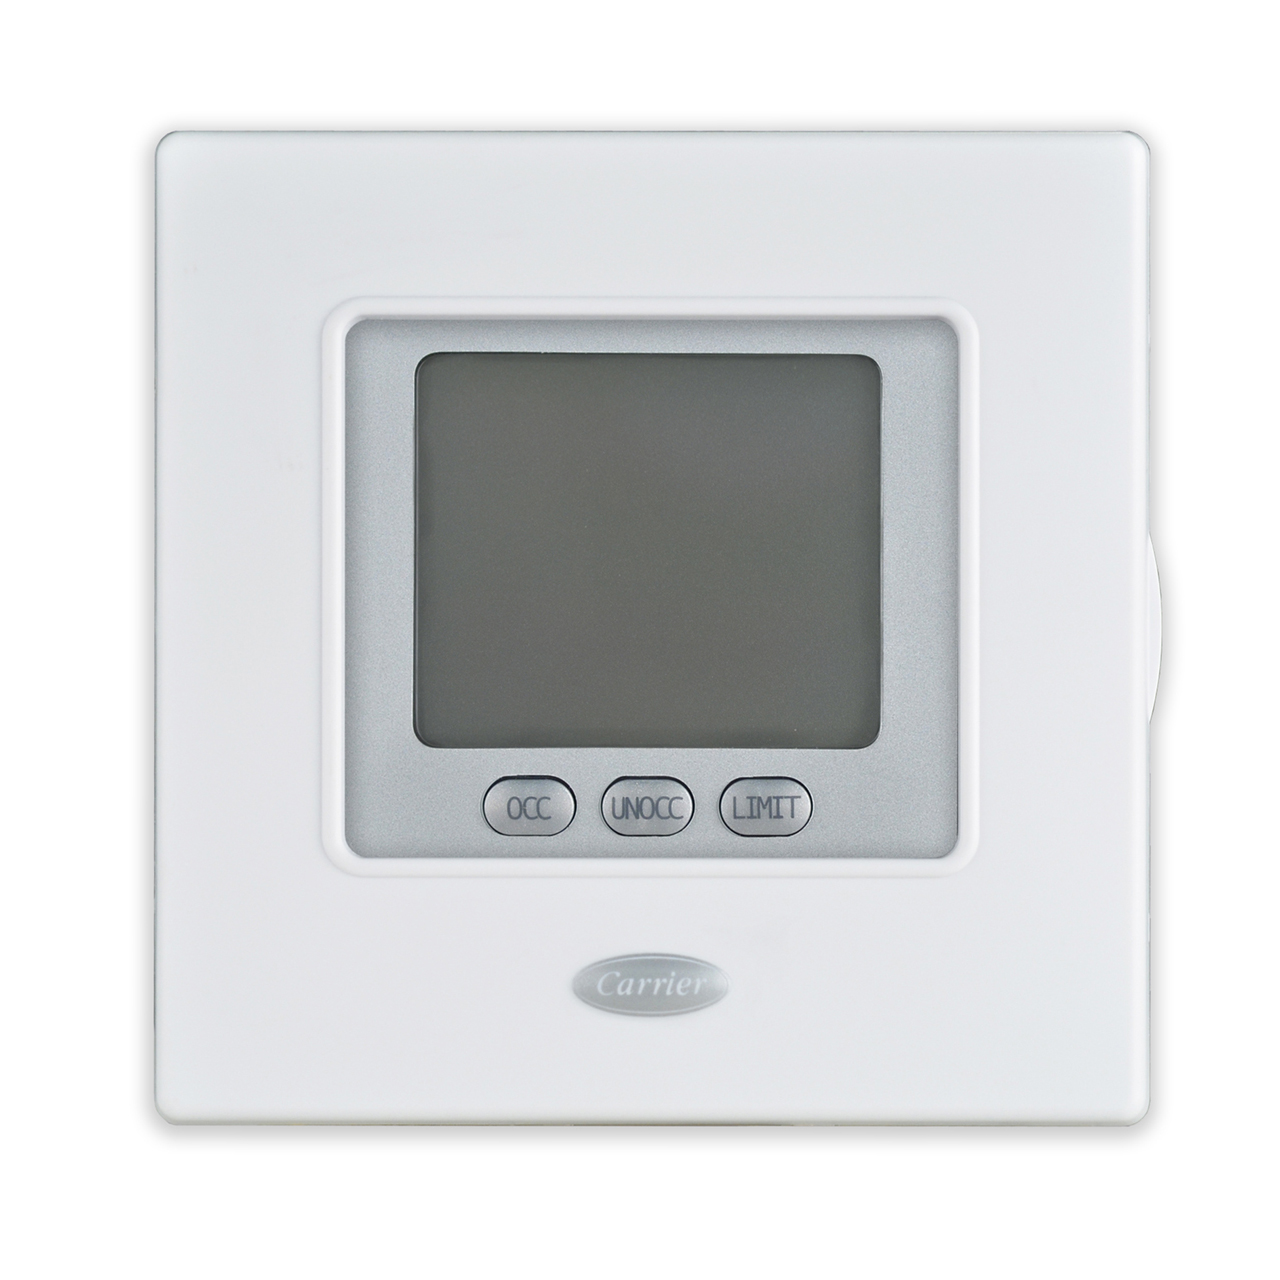 carrier-33CSCPACHP-fc-non-communicating-programmable-fan-coil-thermostat